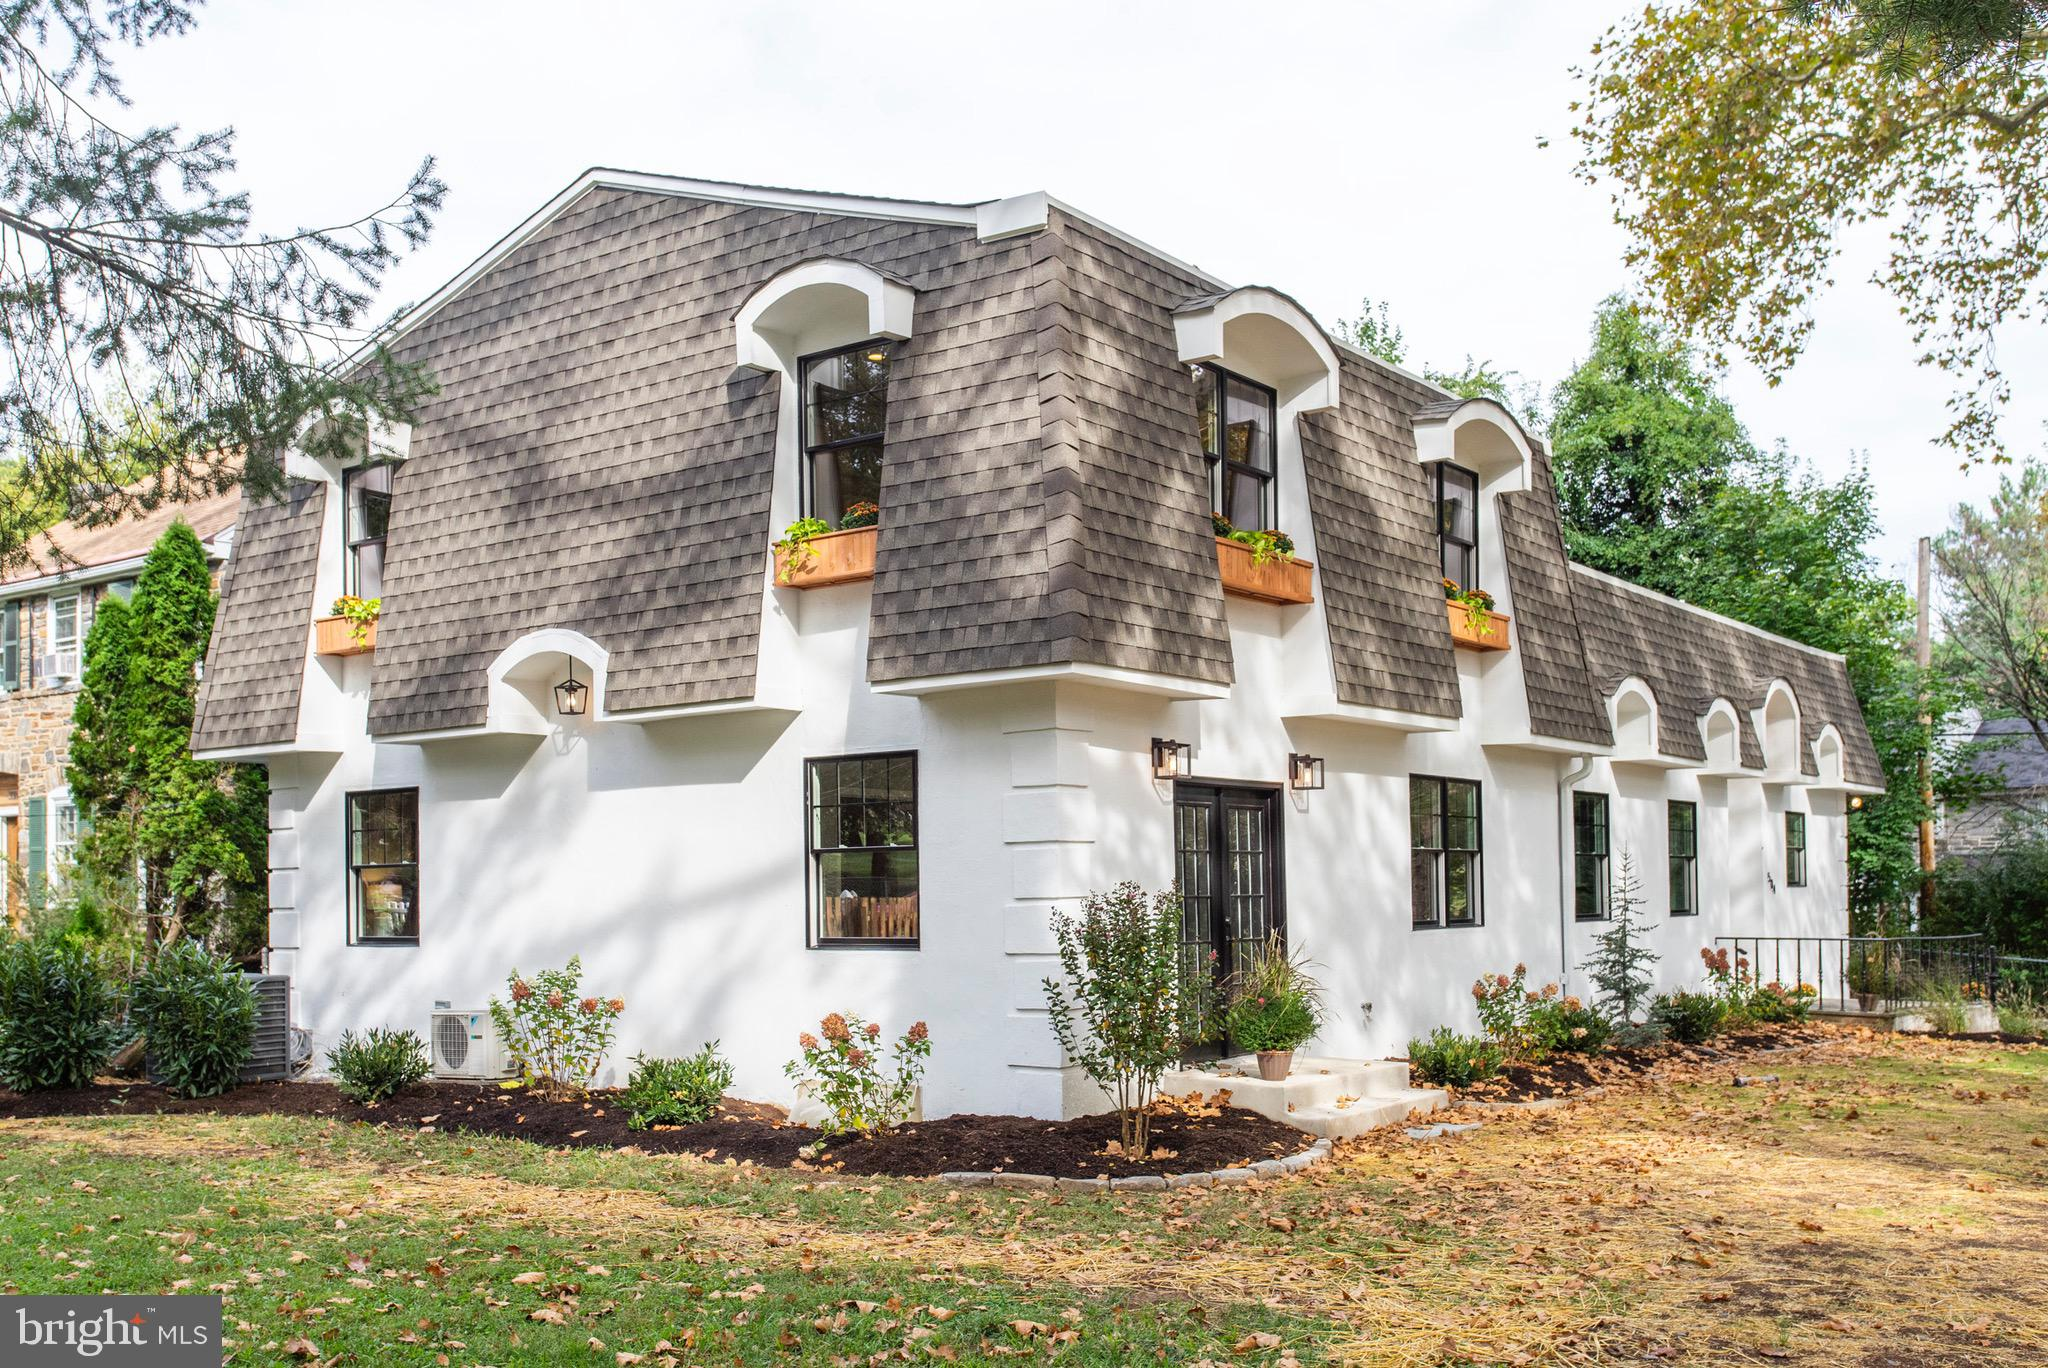 504 LAFAYETTE ROAD, MERION STATION, PA 19066